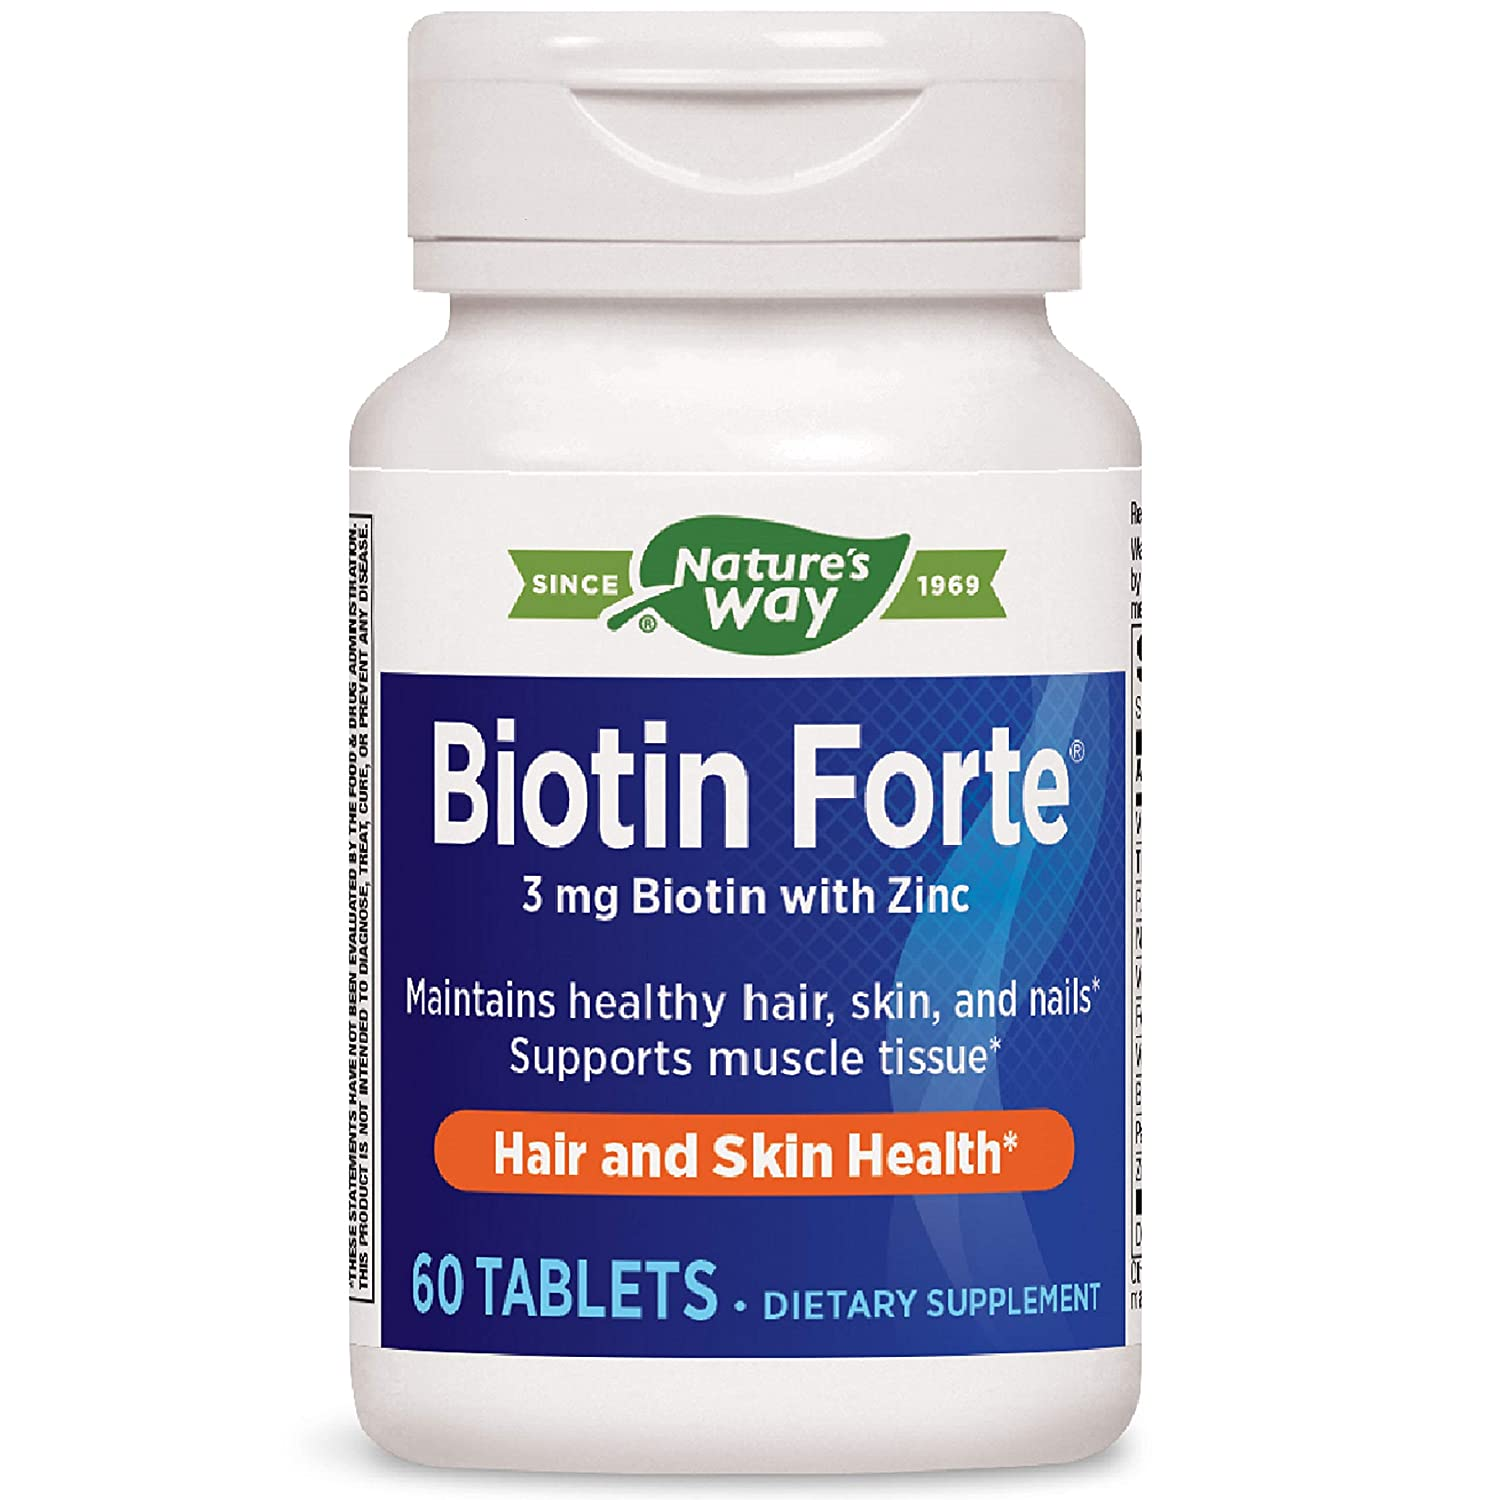 Natures Way Biotin Forte 3mg with Zinc (Packaging May Vary)